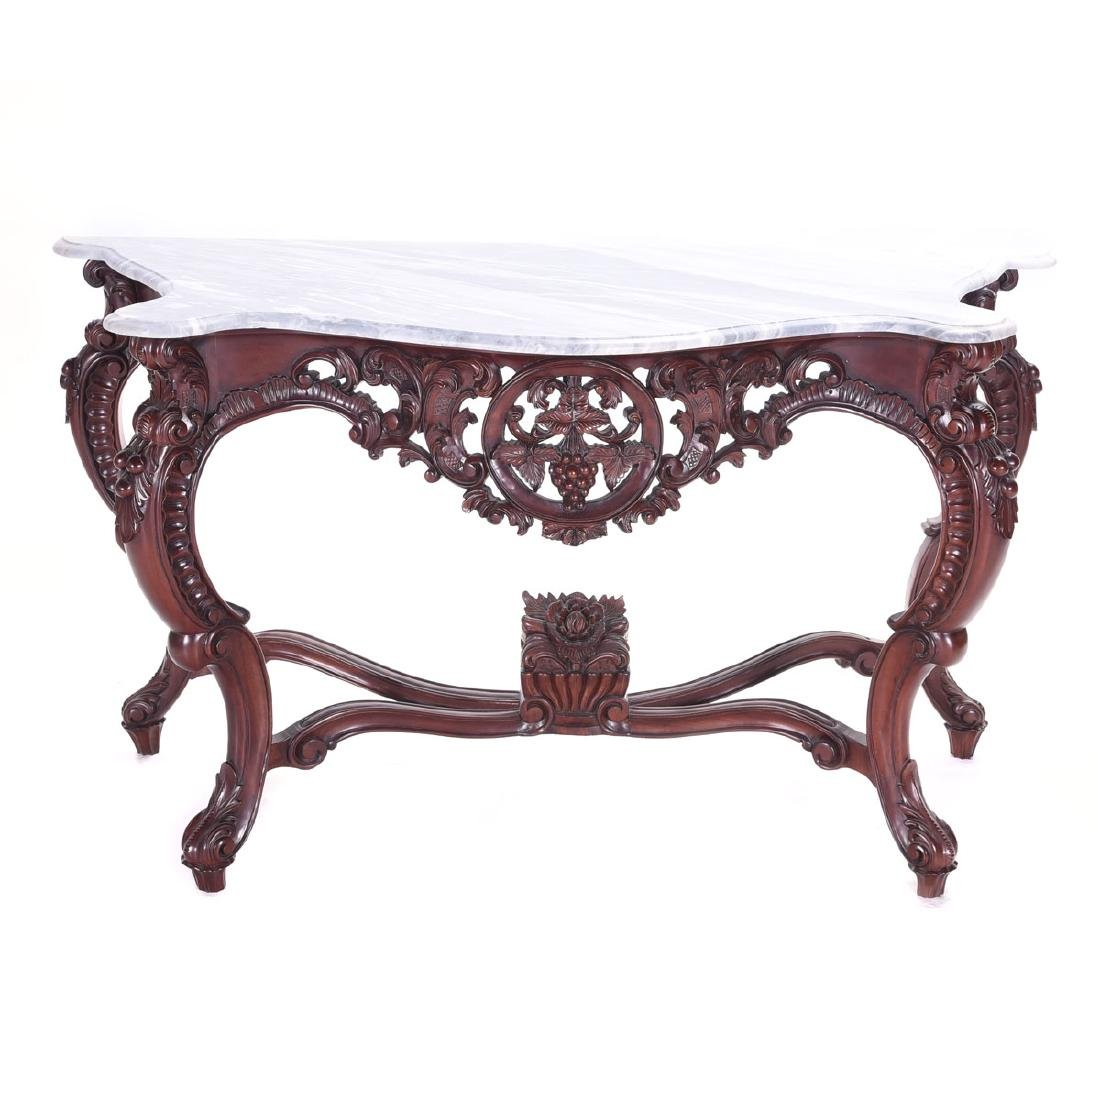 American Rococo Revival Console Table, with Marble Top